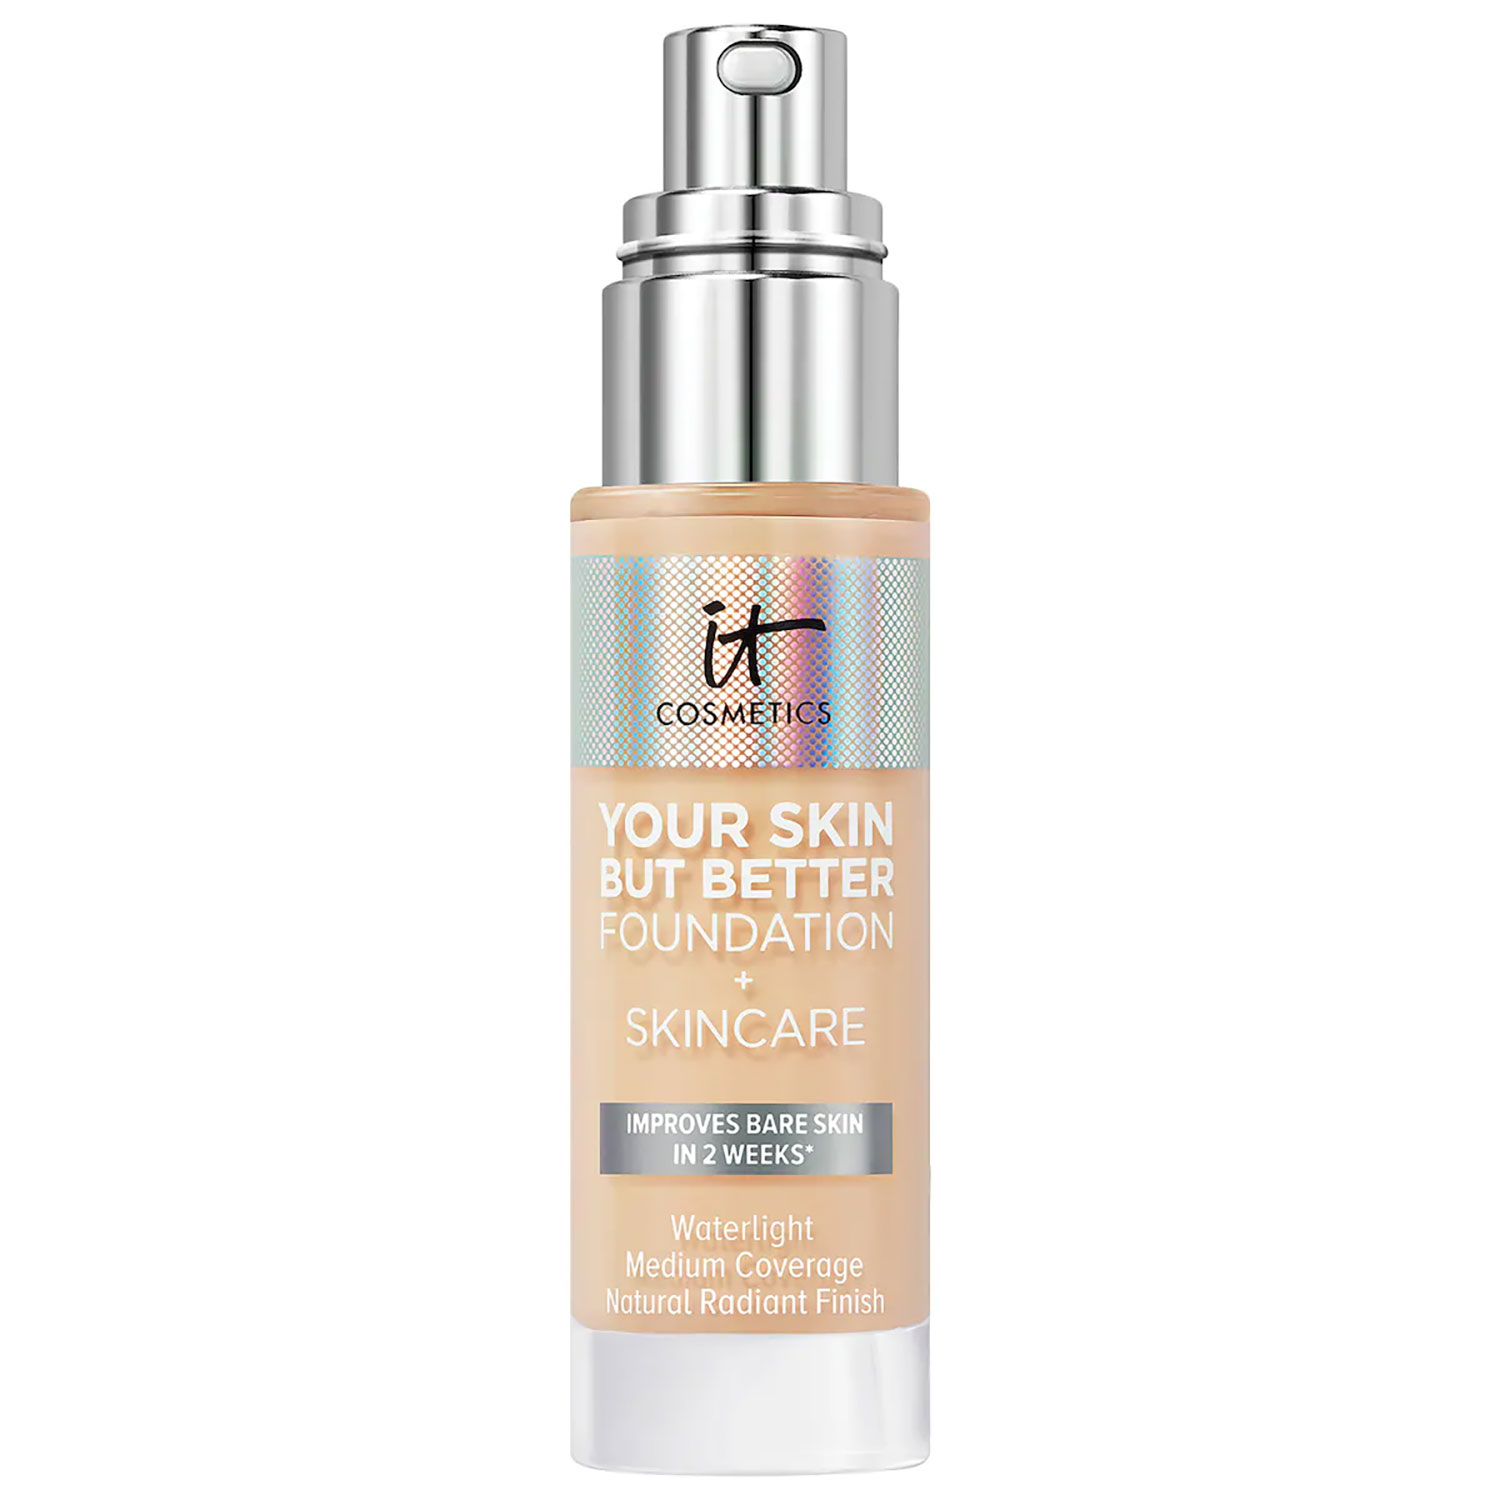 sephora-it-cosmetics-itcosmetics-your-skin-but-better-foundation-skincare-skin-care